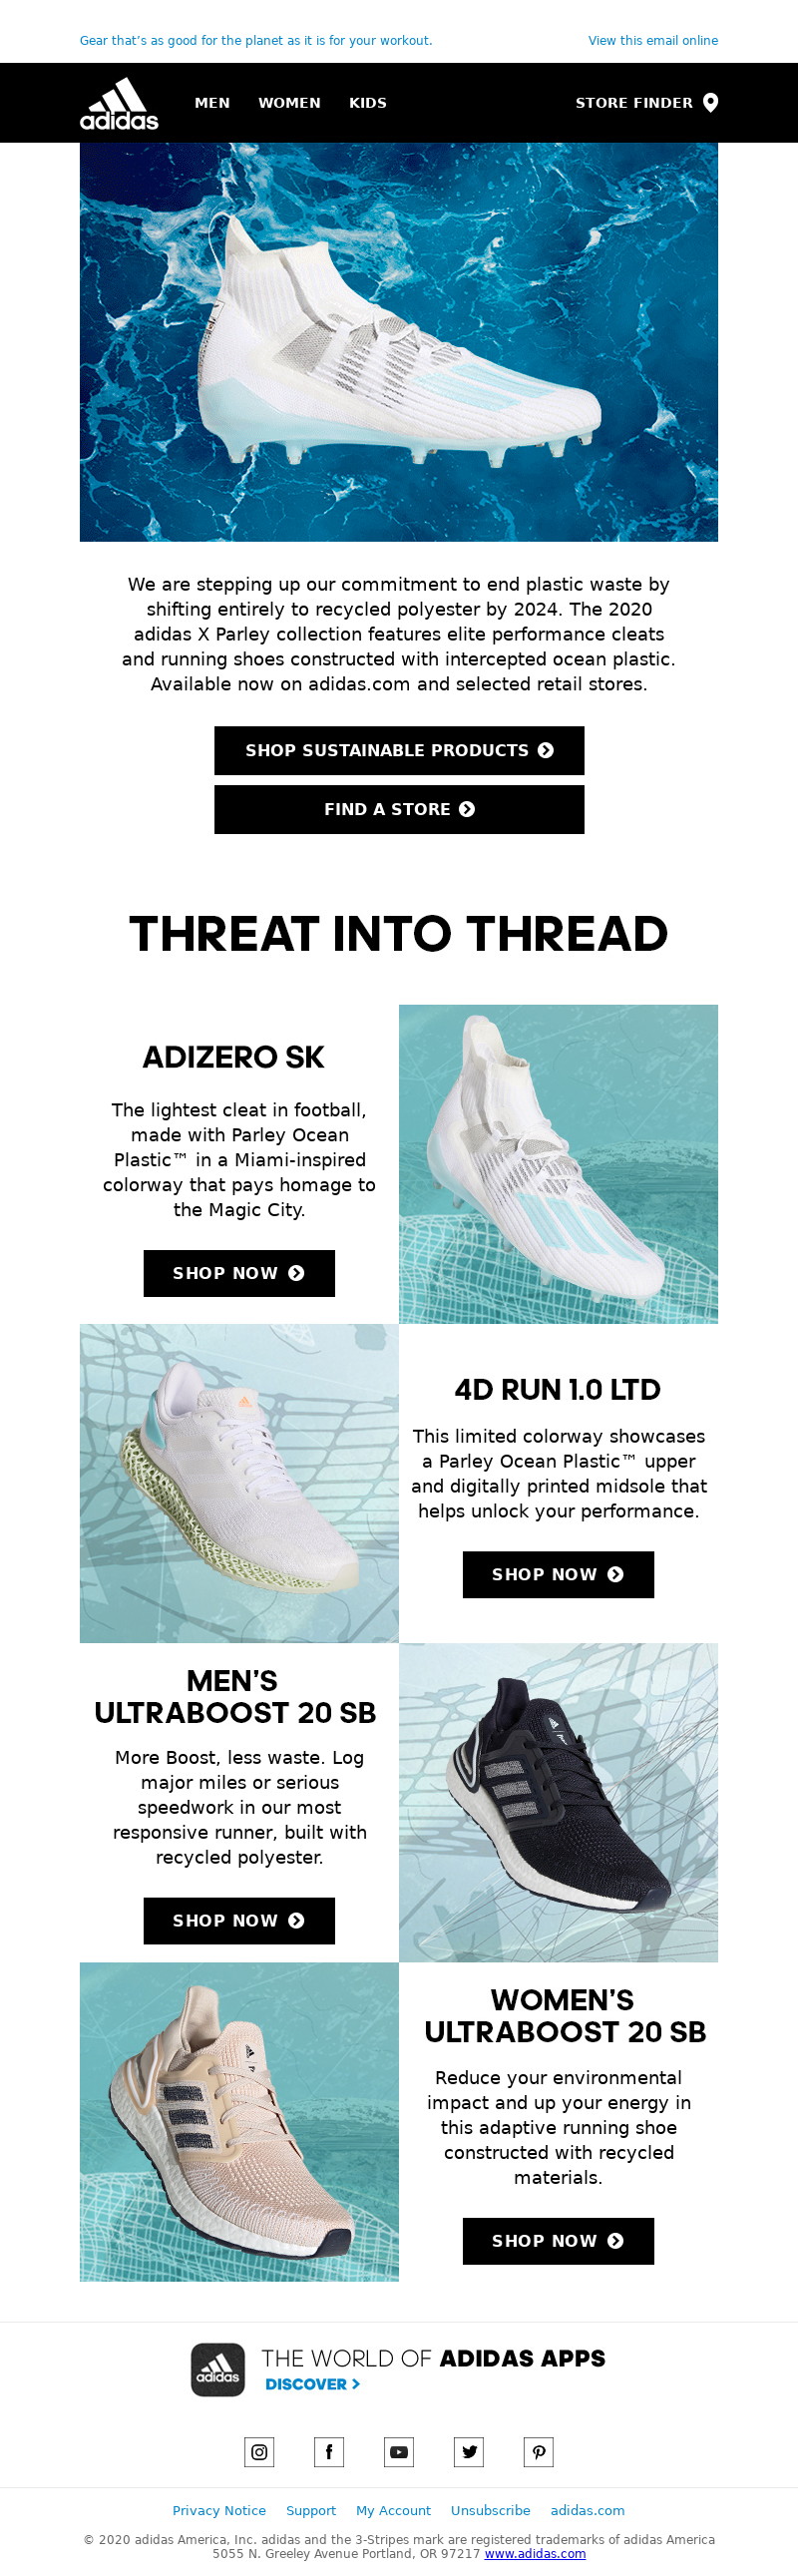 Shoe email example by adidas